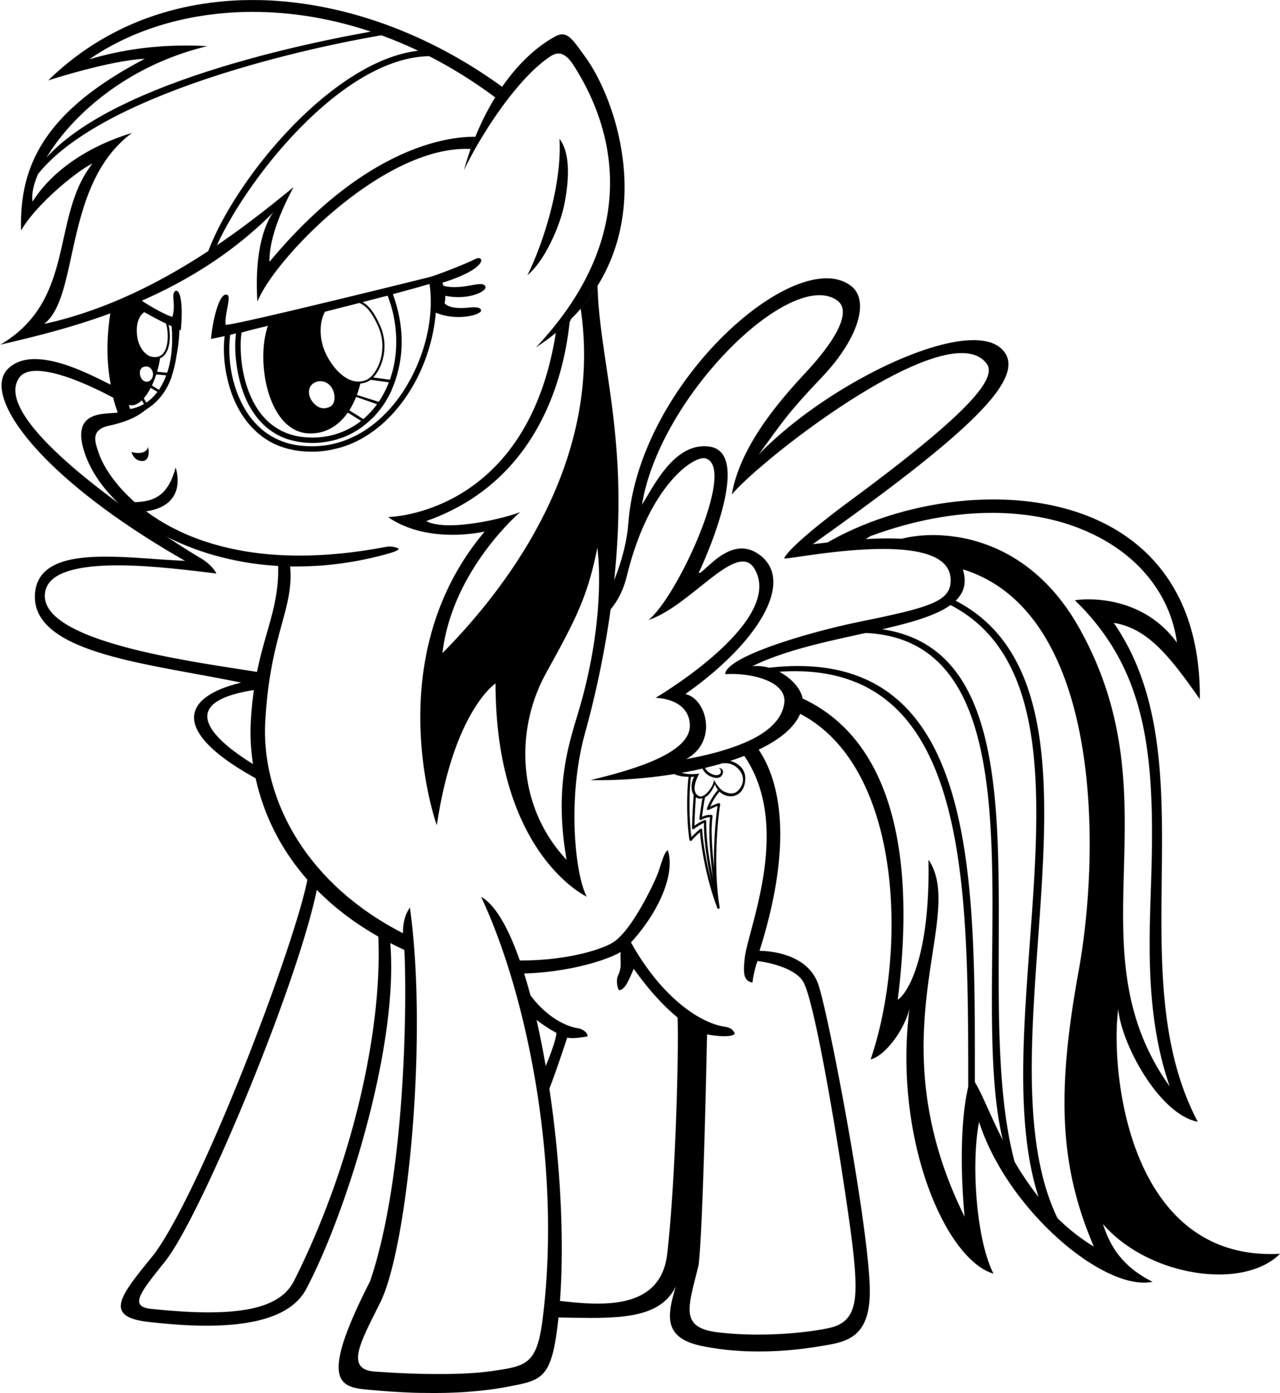 my little pony coloring pages rainbow dash rainbow dash coloring page clipart panda free clipart rainbow my pages pony little dash coloring